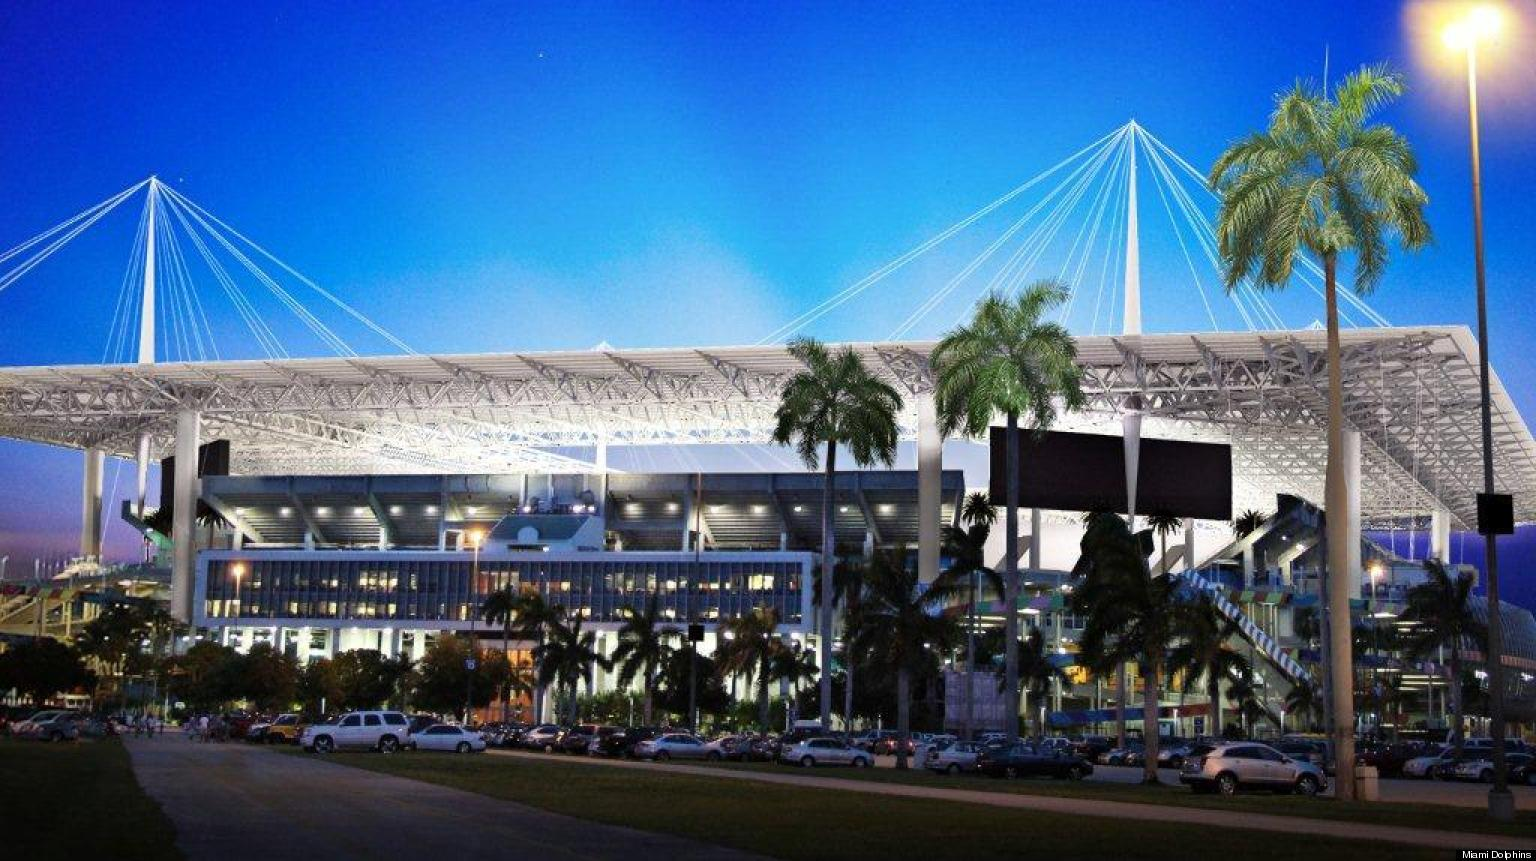 Sun Life Renovations : Miami dolphins unveil million renovation plan and